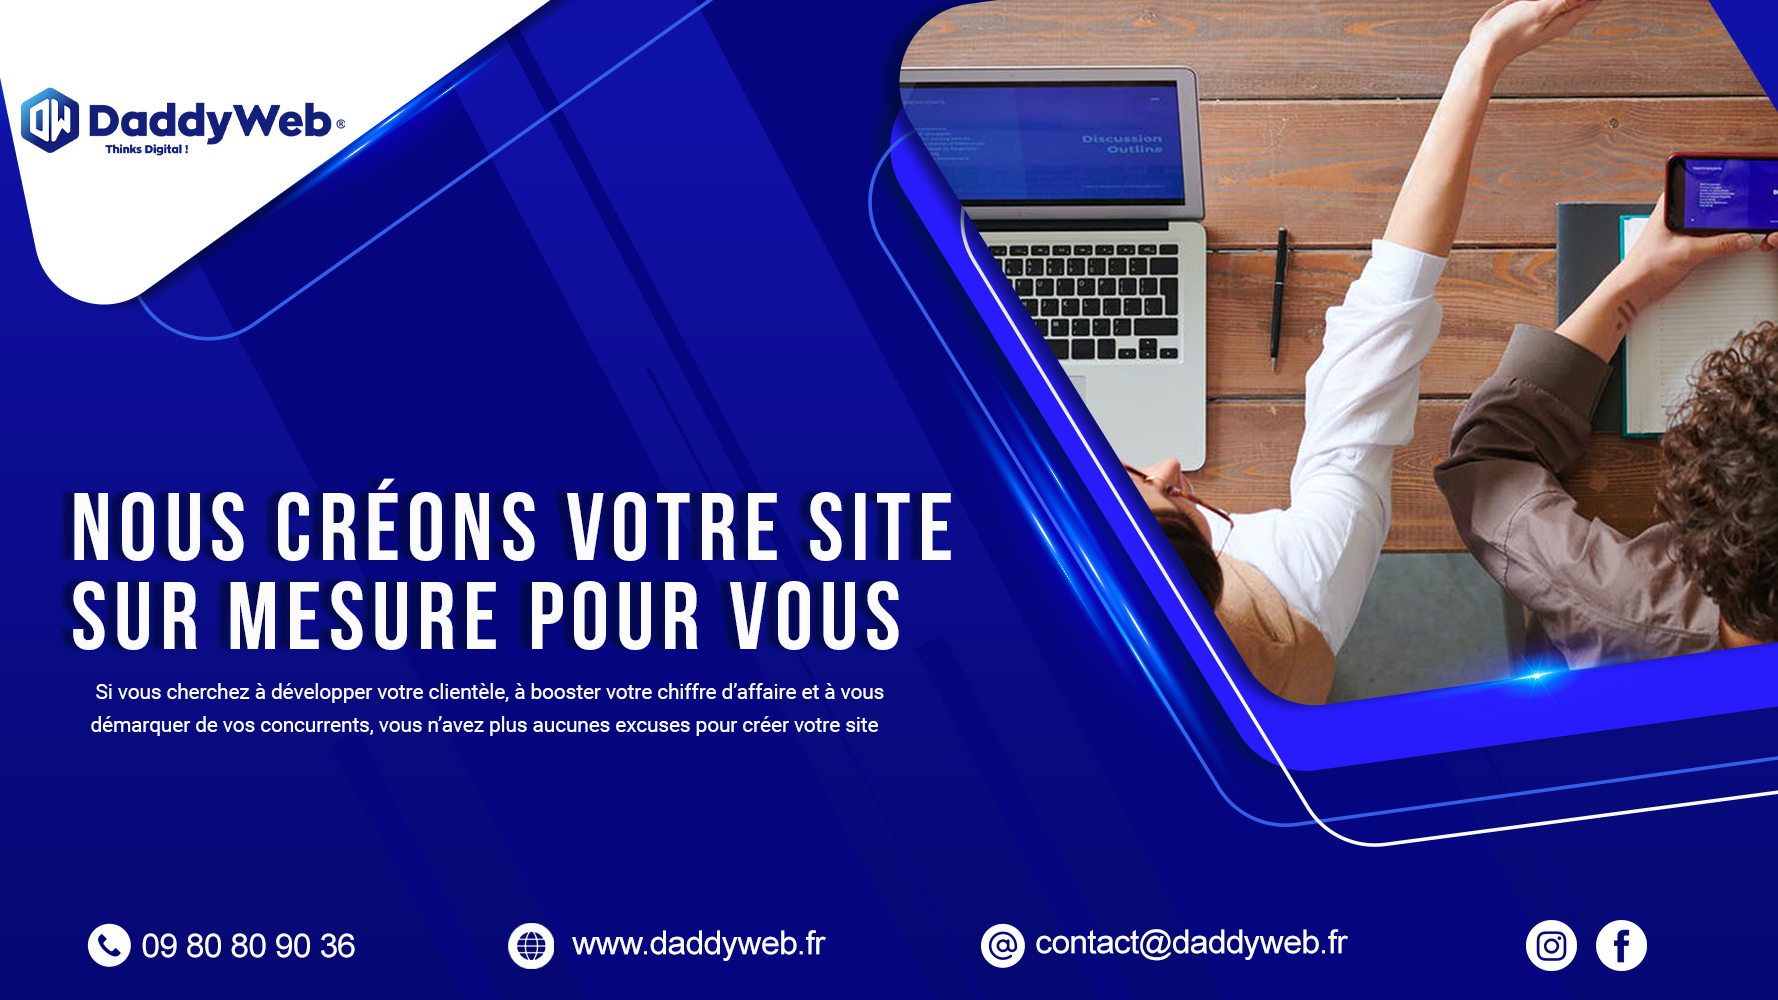 DADDYWEB Referencement local et site web pas cher